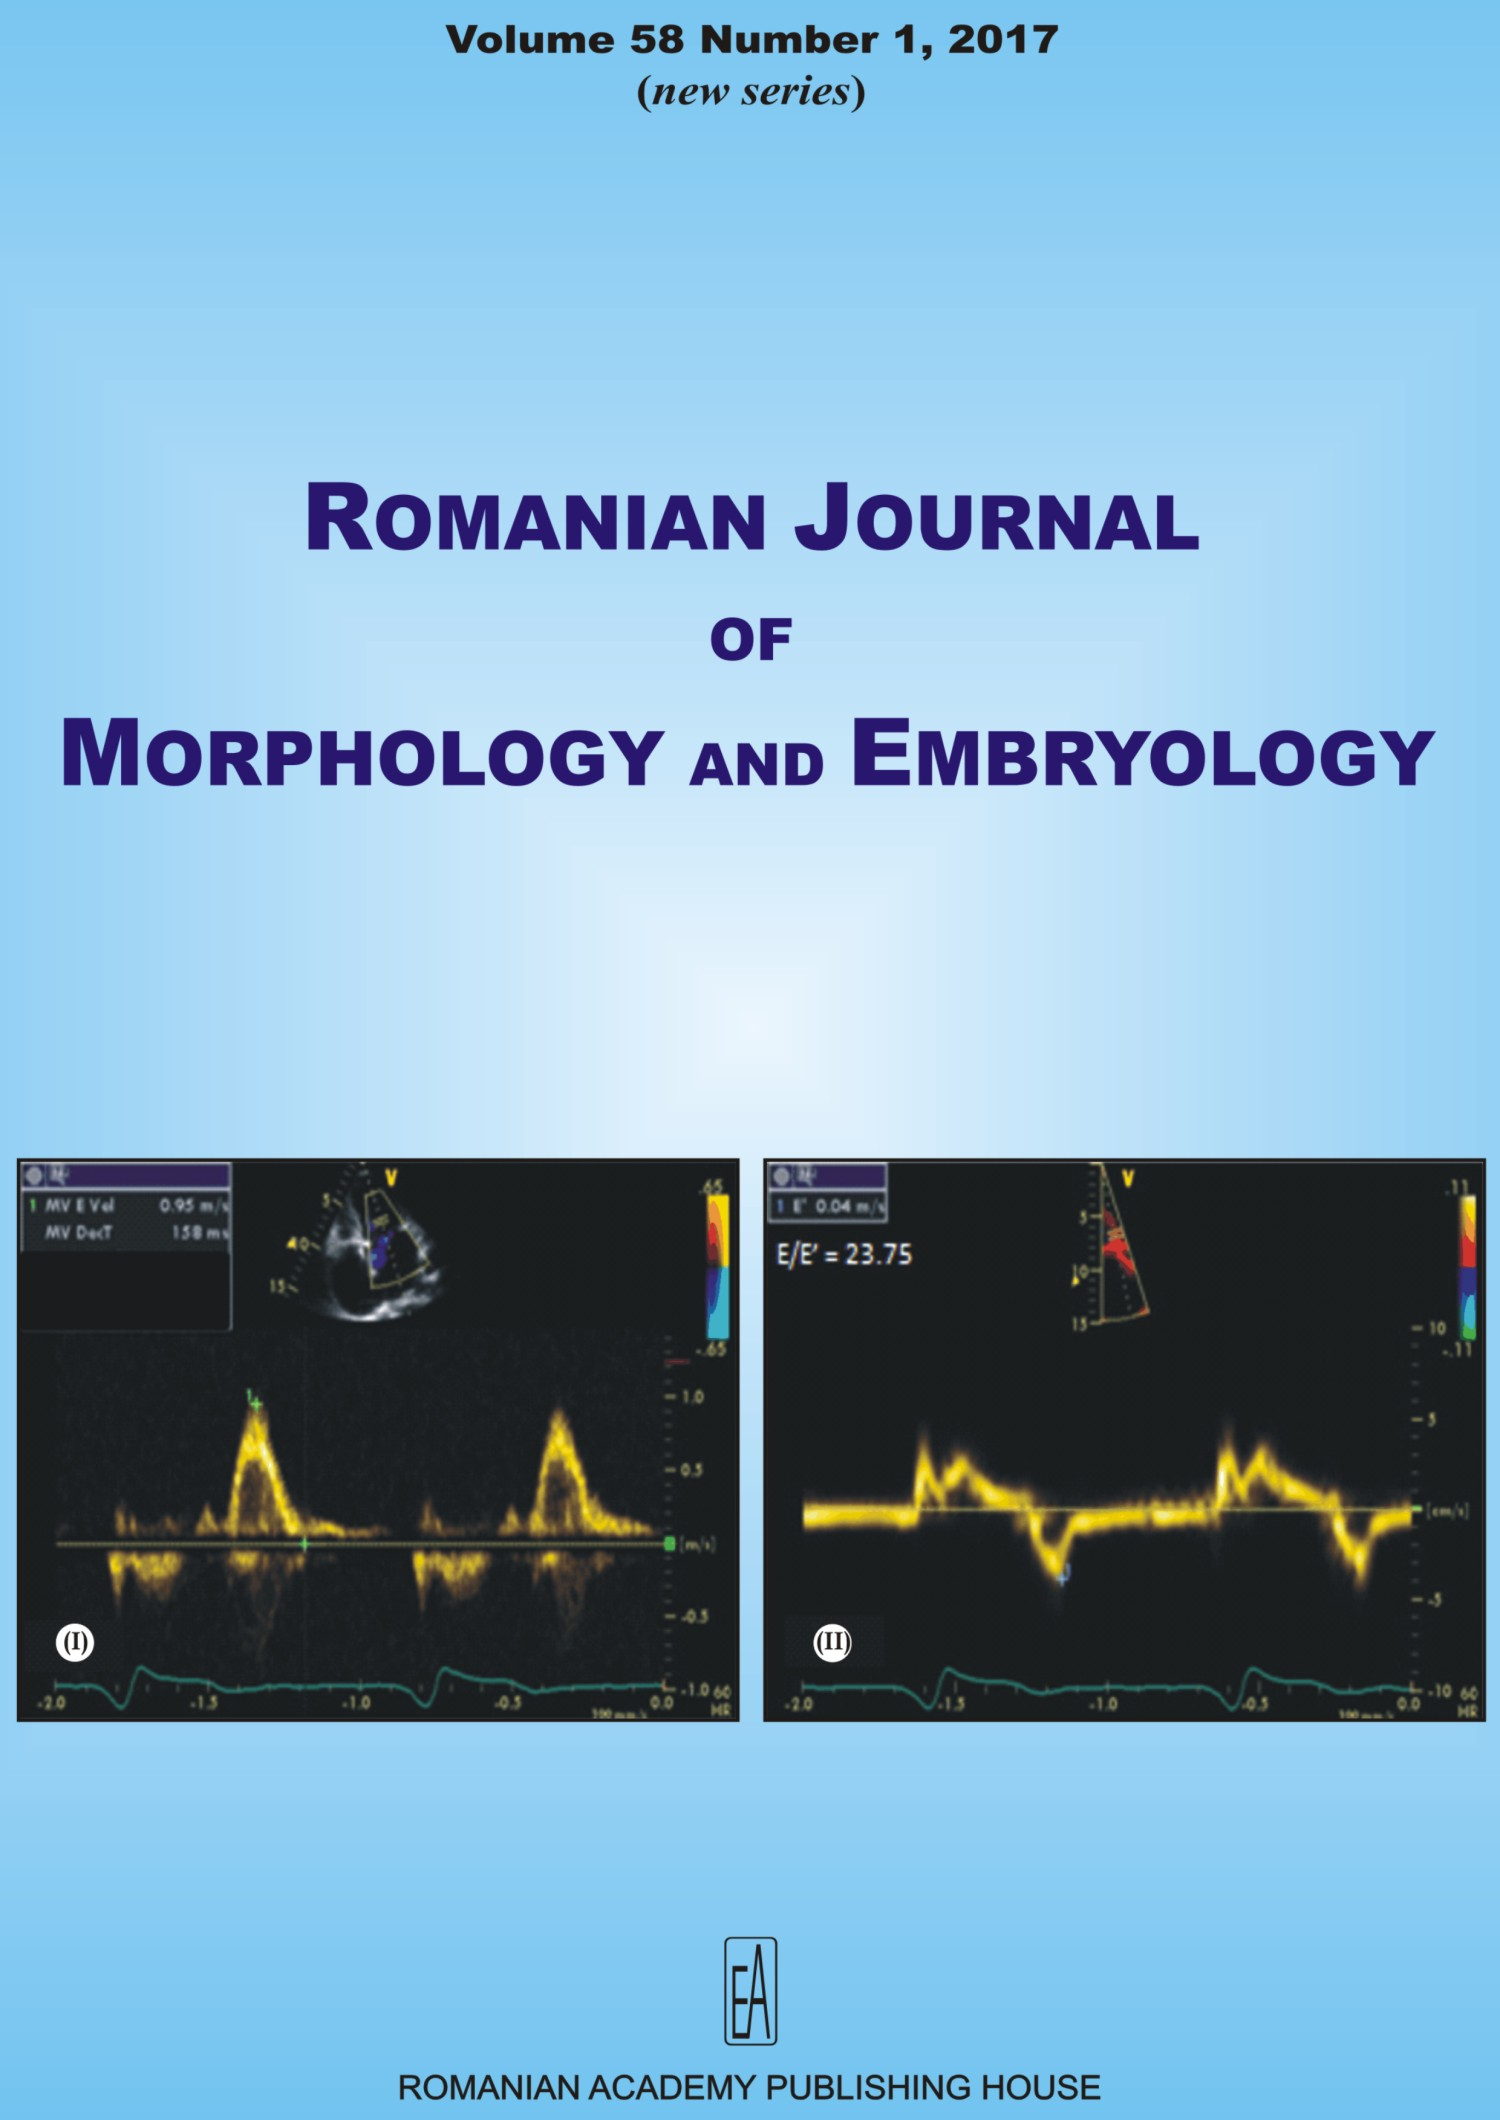 Romanian Journal of Morphology and Embryology, vol. 58 no. 1, 2017